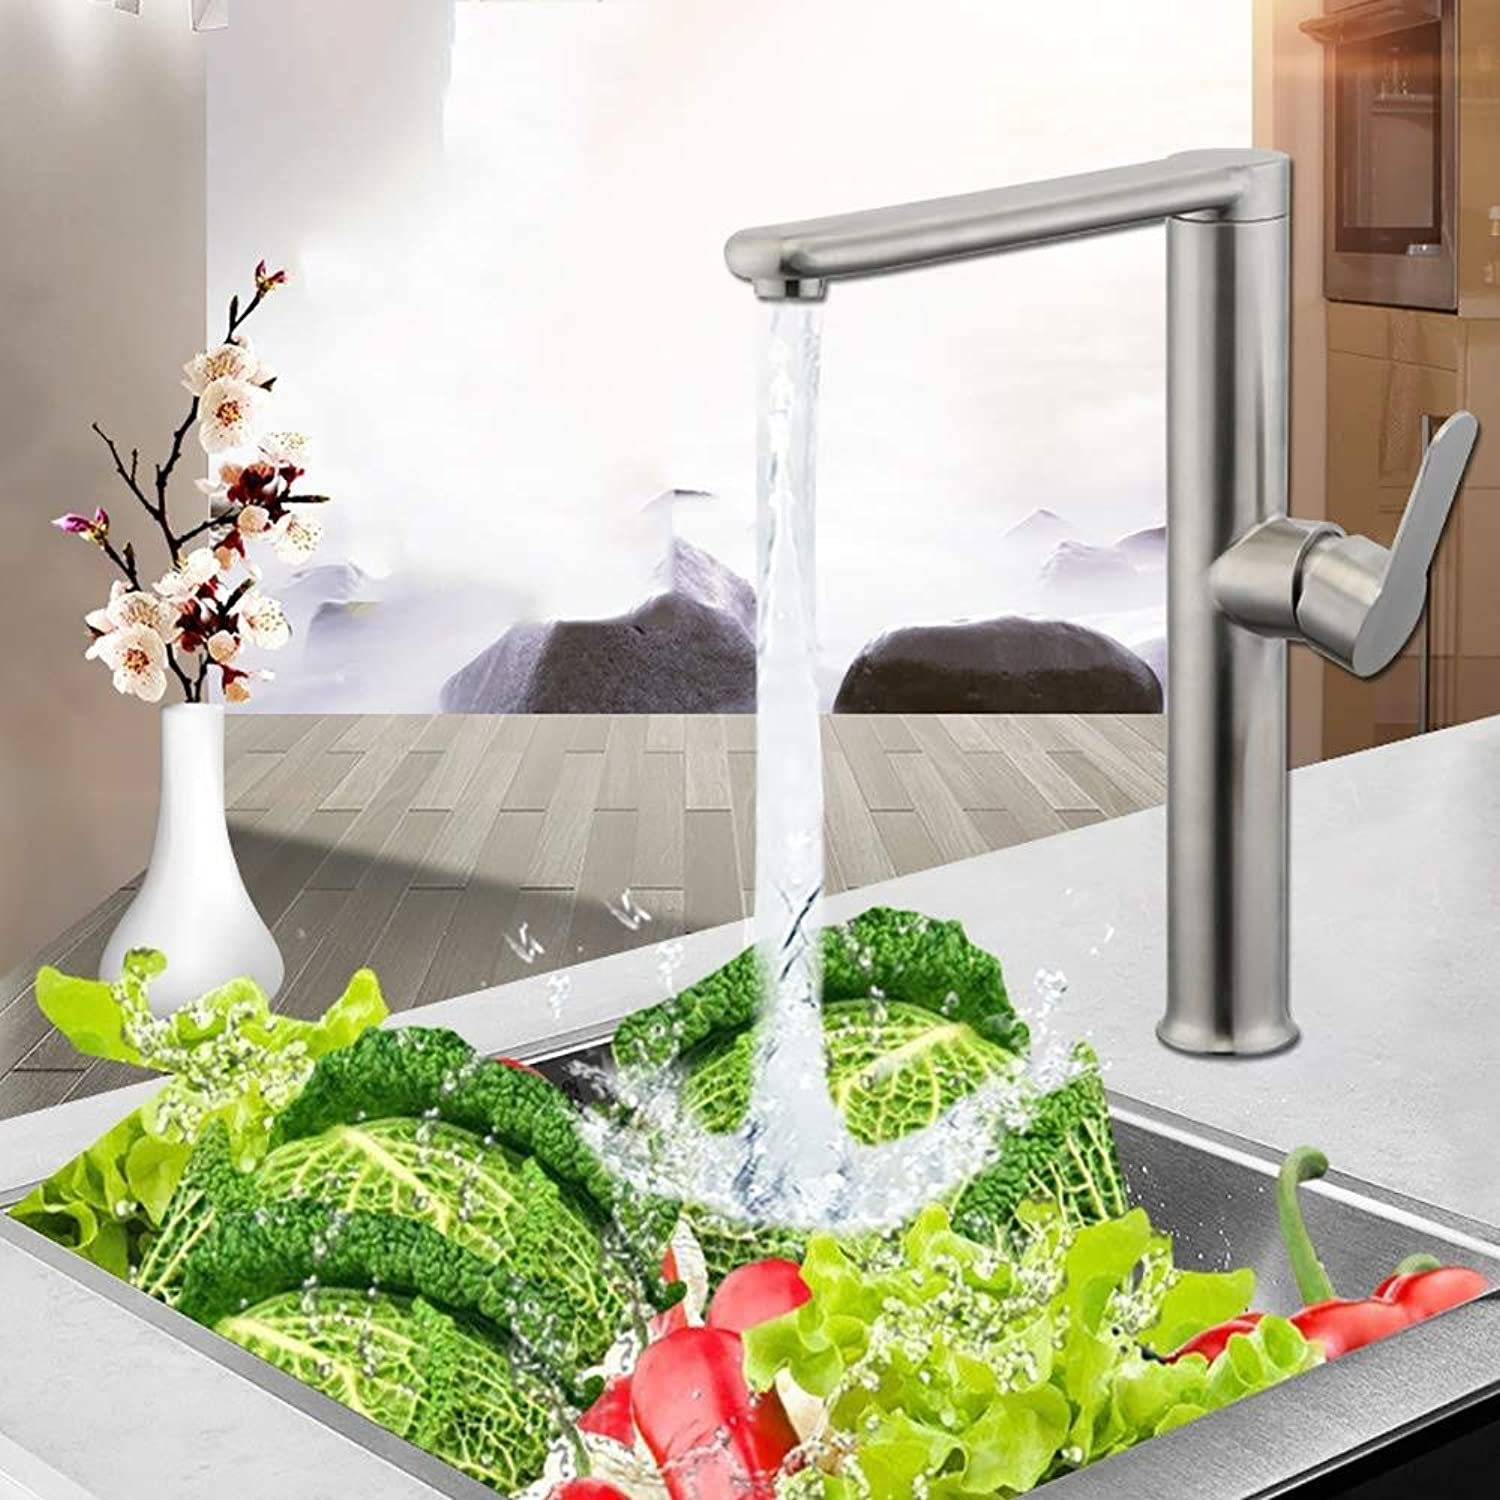 Honcx Faucet Water Tap, Flat Tube 360°redation 304 Stainless Steel Hot and Cold Mixing, Kitchen Sink Vegetables Basin